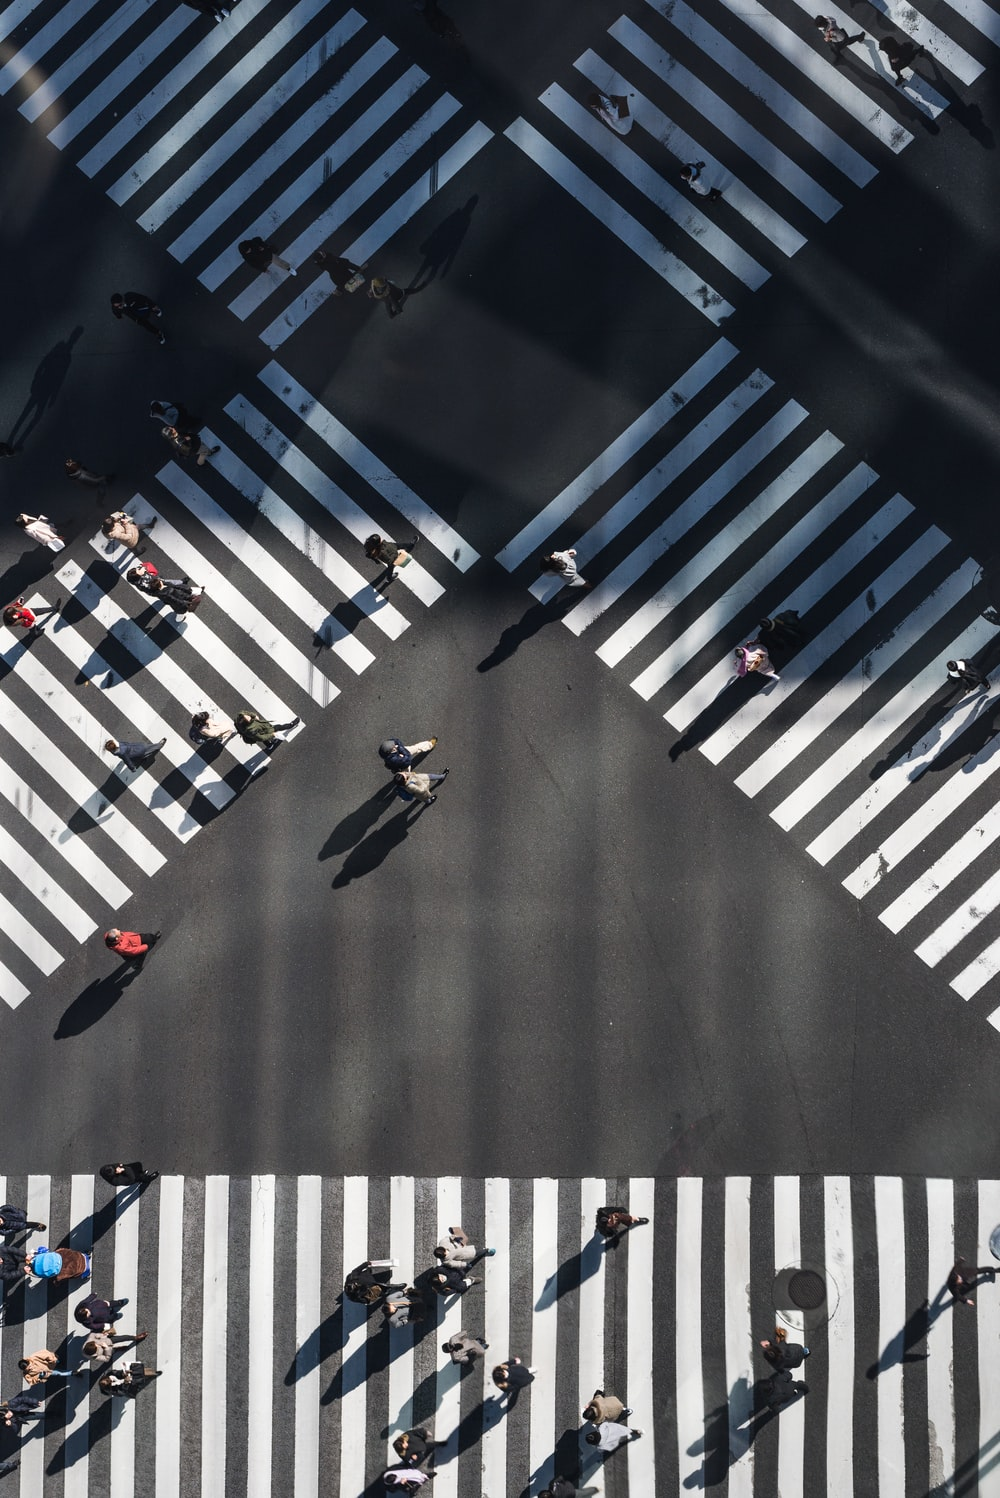 aerial photography of people walking in the intersection street during daytime